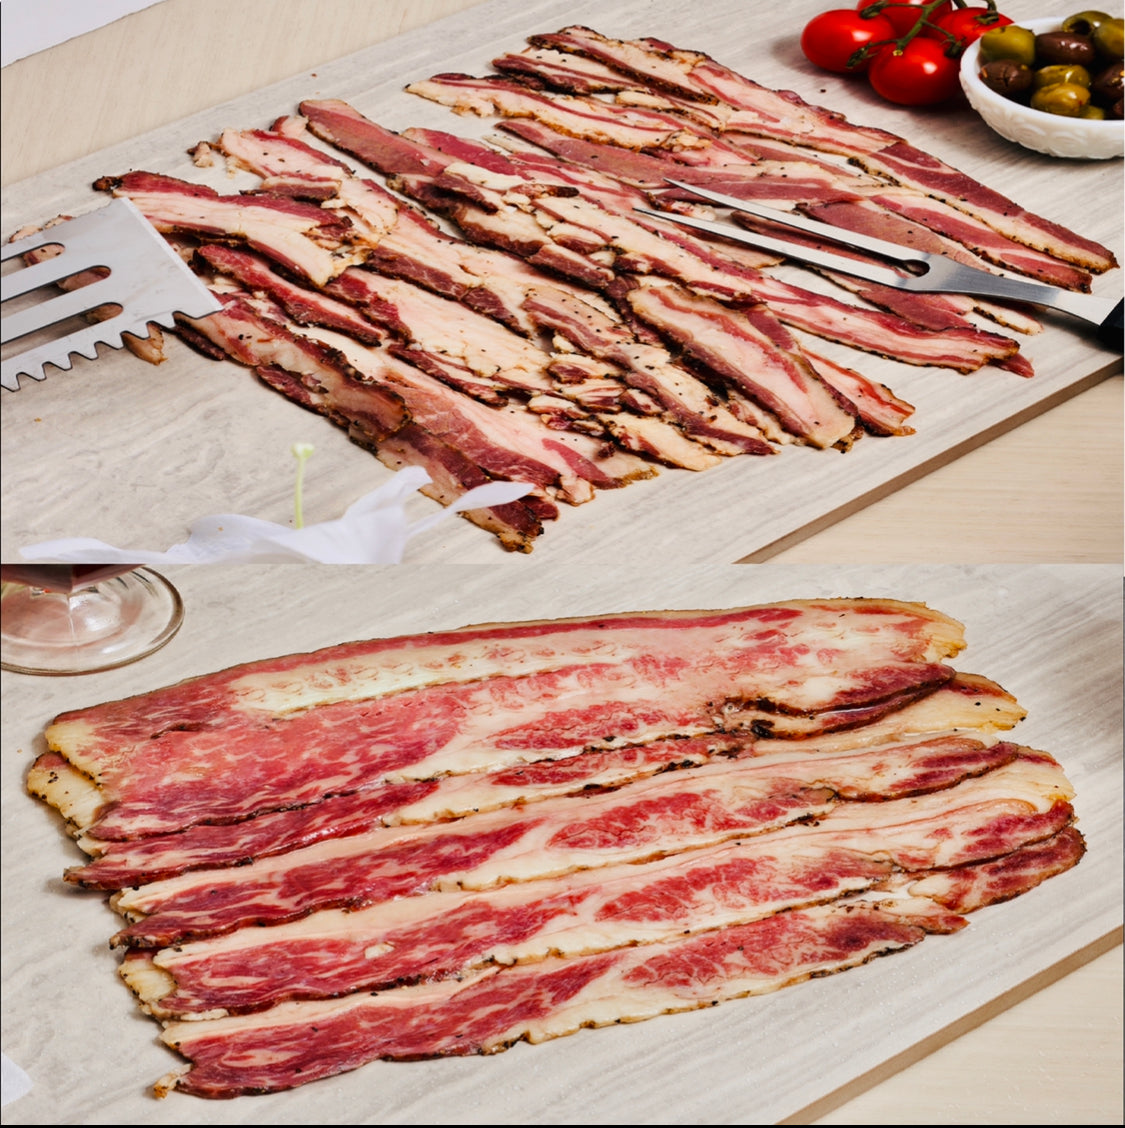 Lamb Bacon & Maple Bacon 1lb